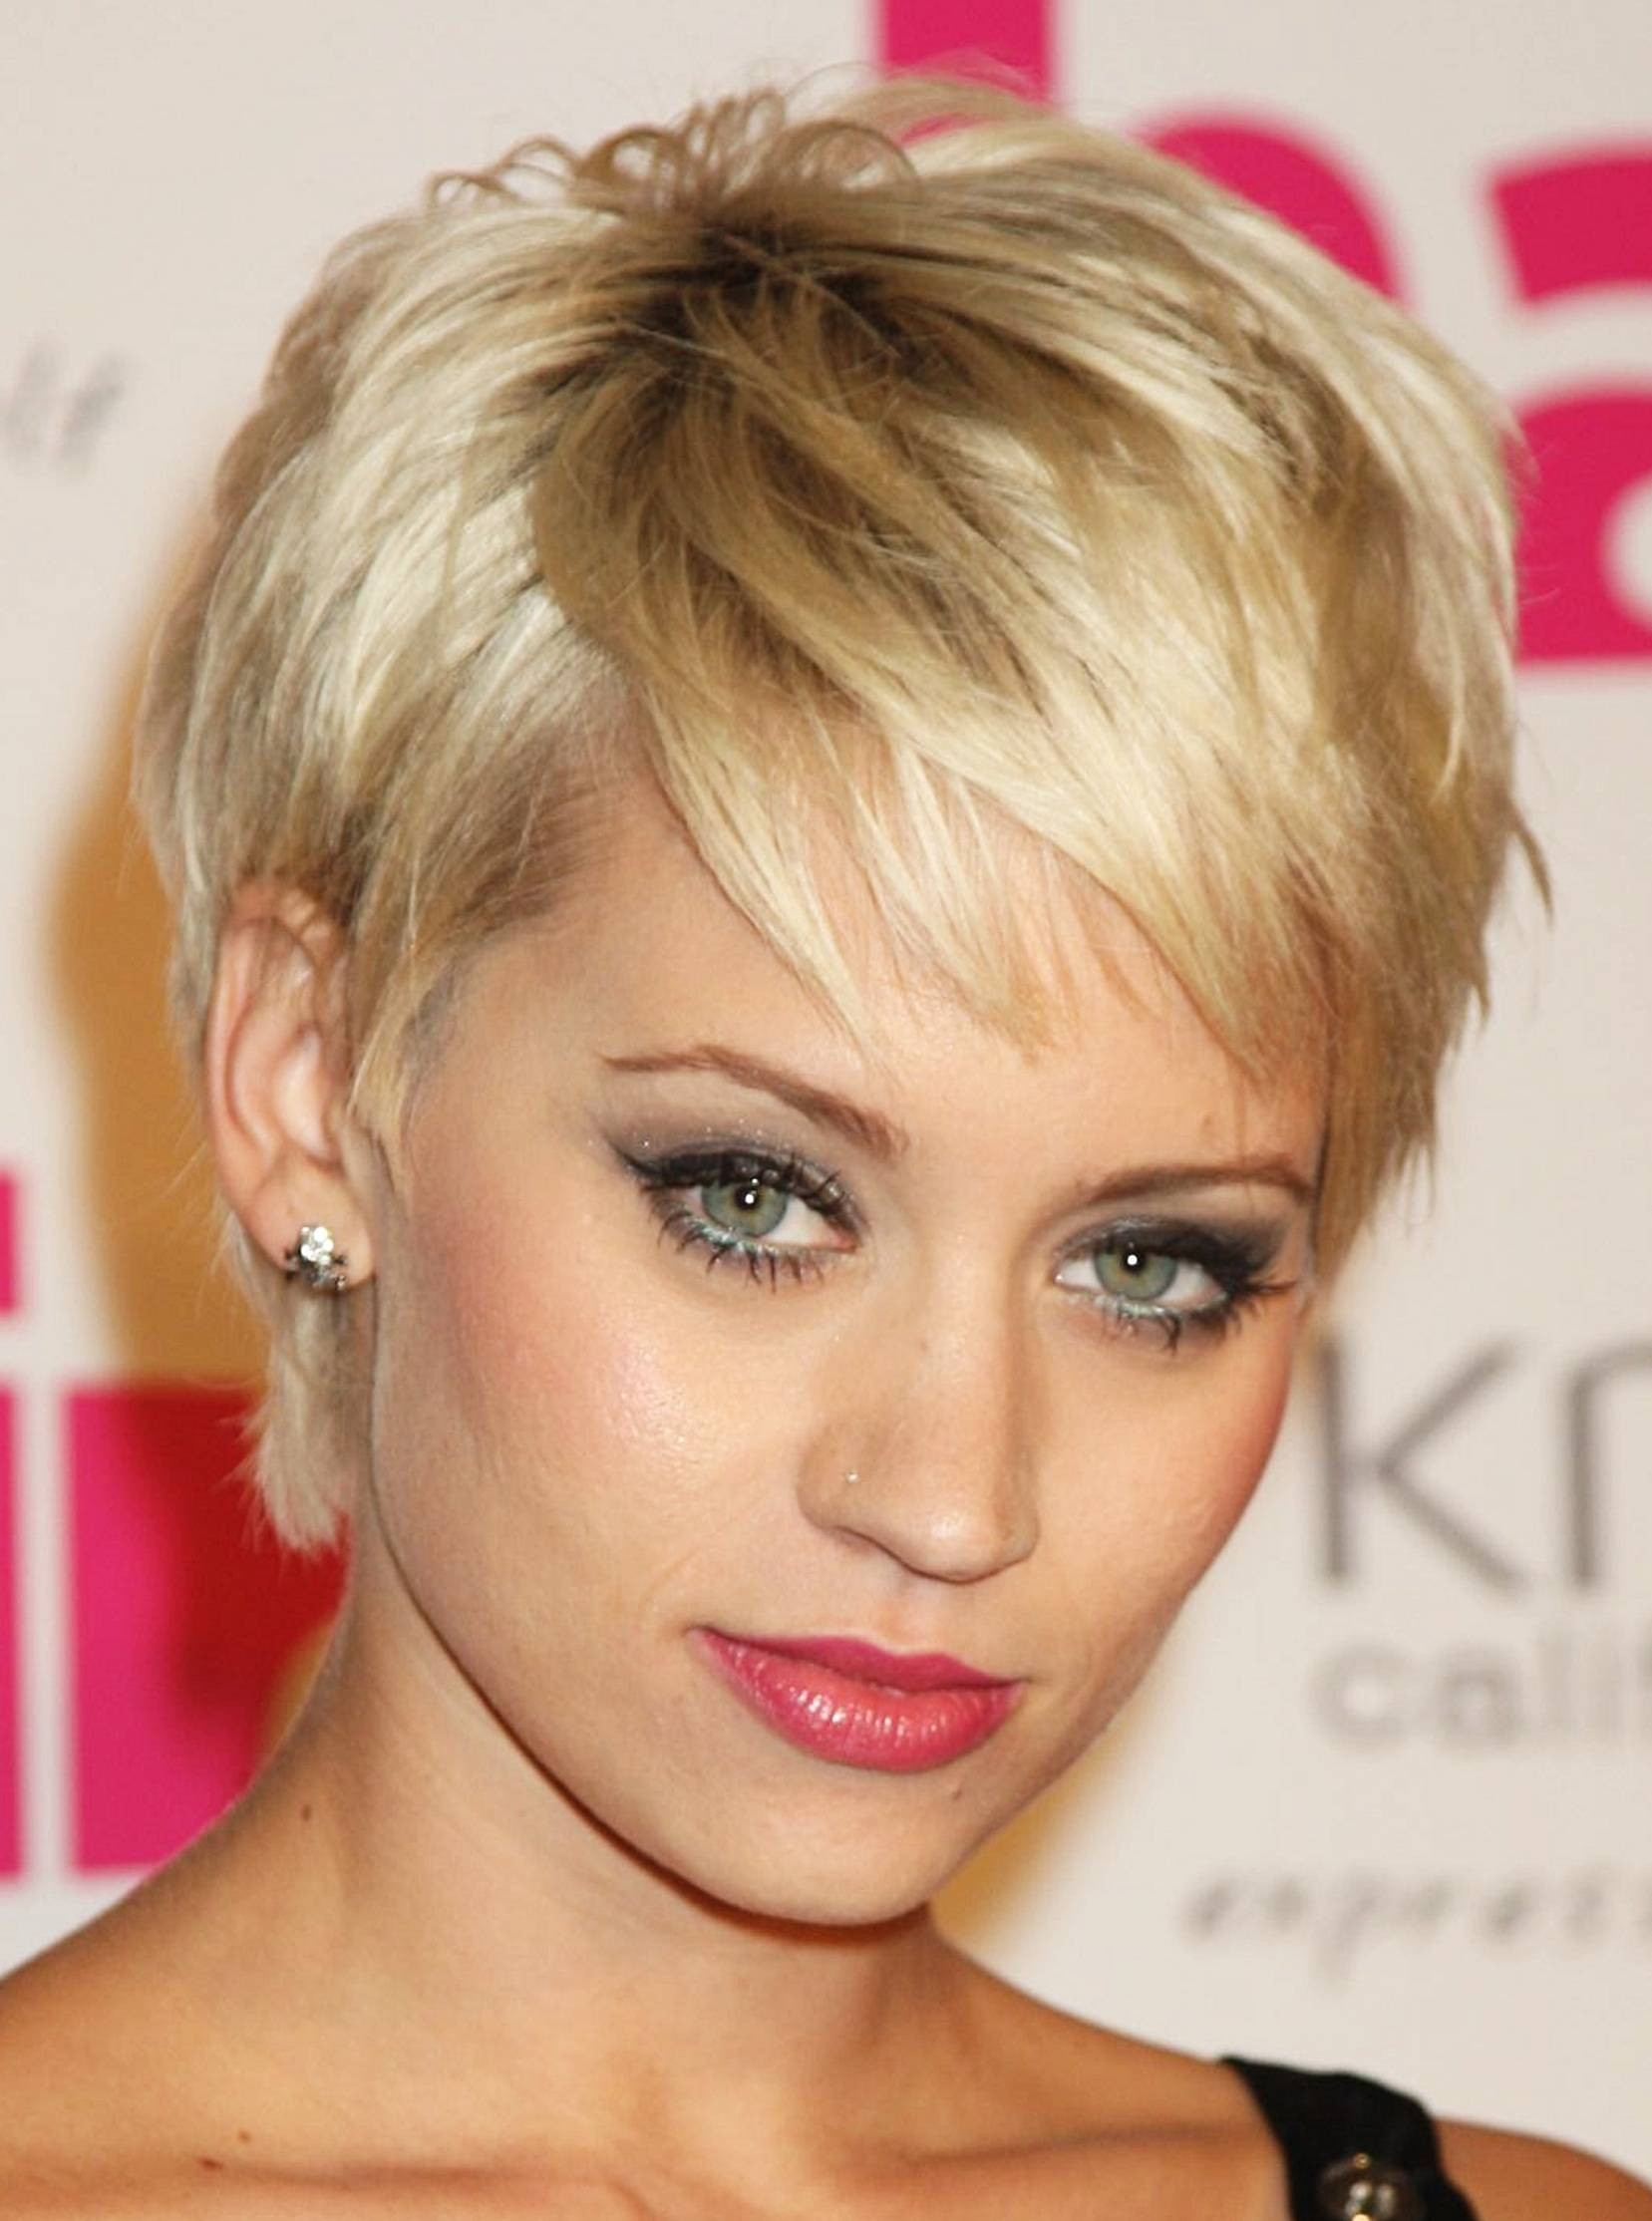 Best ideas about Hairstyles For Women With Short Hair . Save or Pin Short Rock Hair Style Women Hairstyles Now.